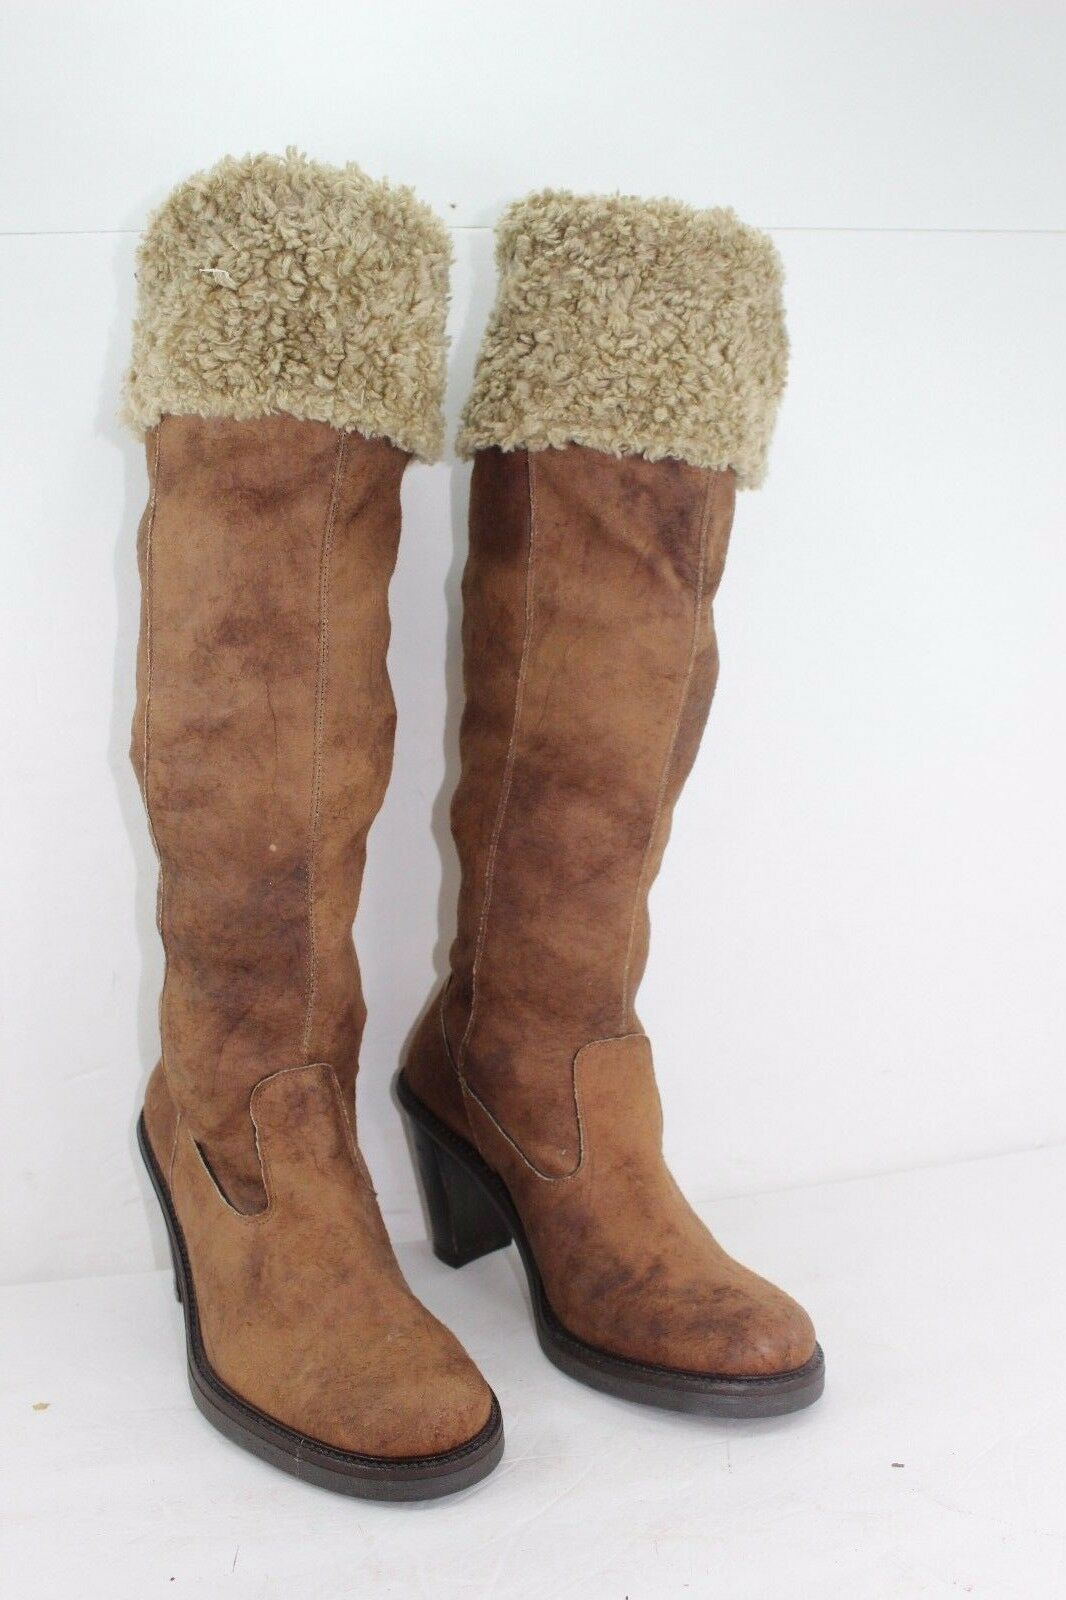 X-IT MADE IN ITALY BOOTS SIZE 39 US 9 BROWNS FUR IN GREAT CONDITION